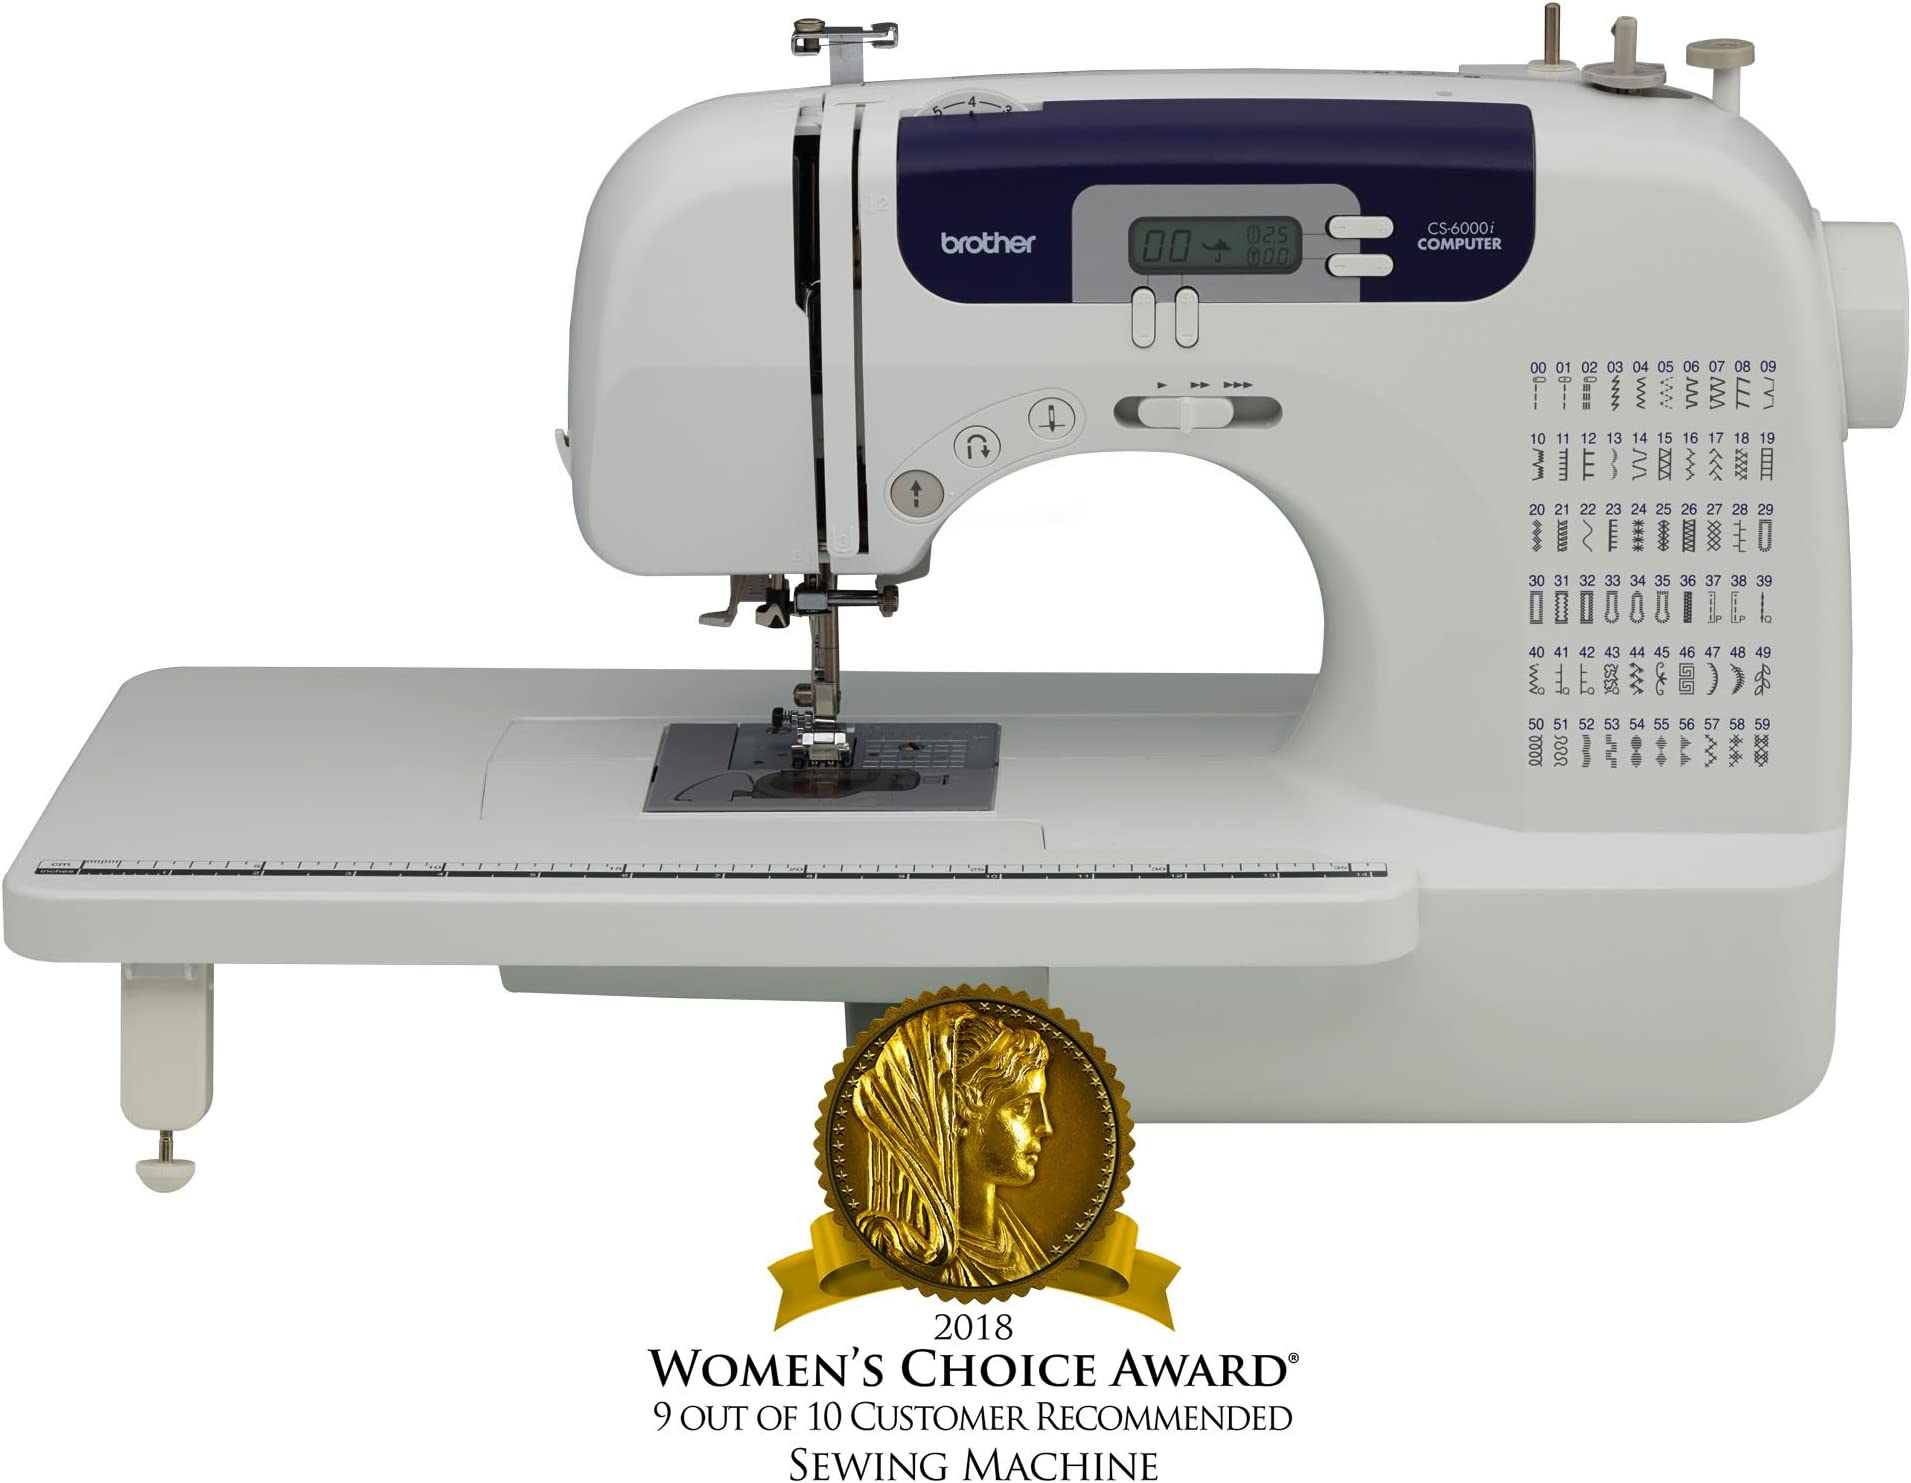 shop amazon com sewing machinebrother sewing and quilting machine, cs6000i, 60 built in stitches, 7 styles